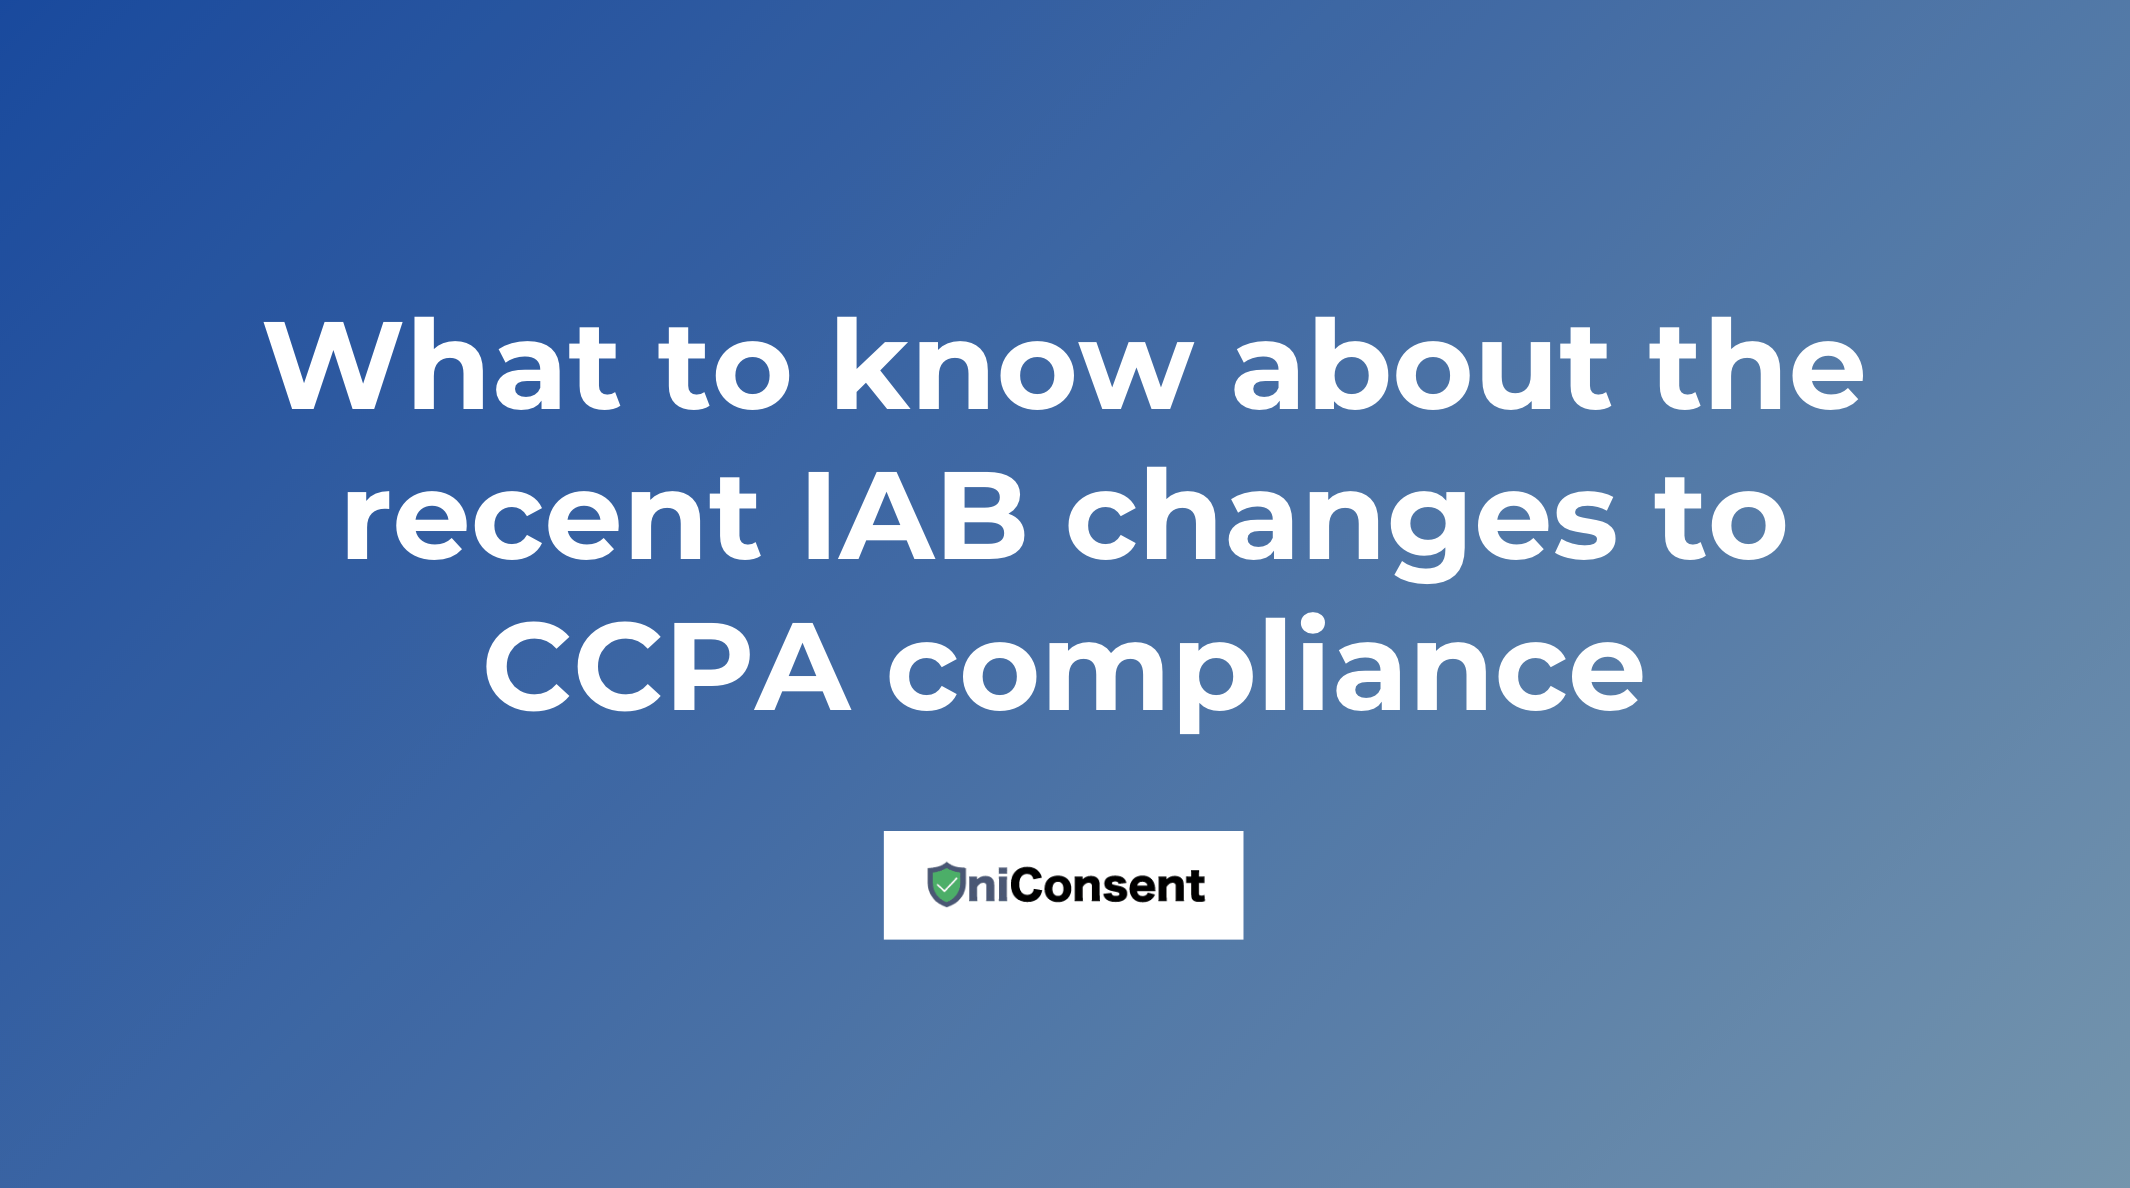 What to know about the recent IAB changes to CCPA compliance